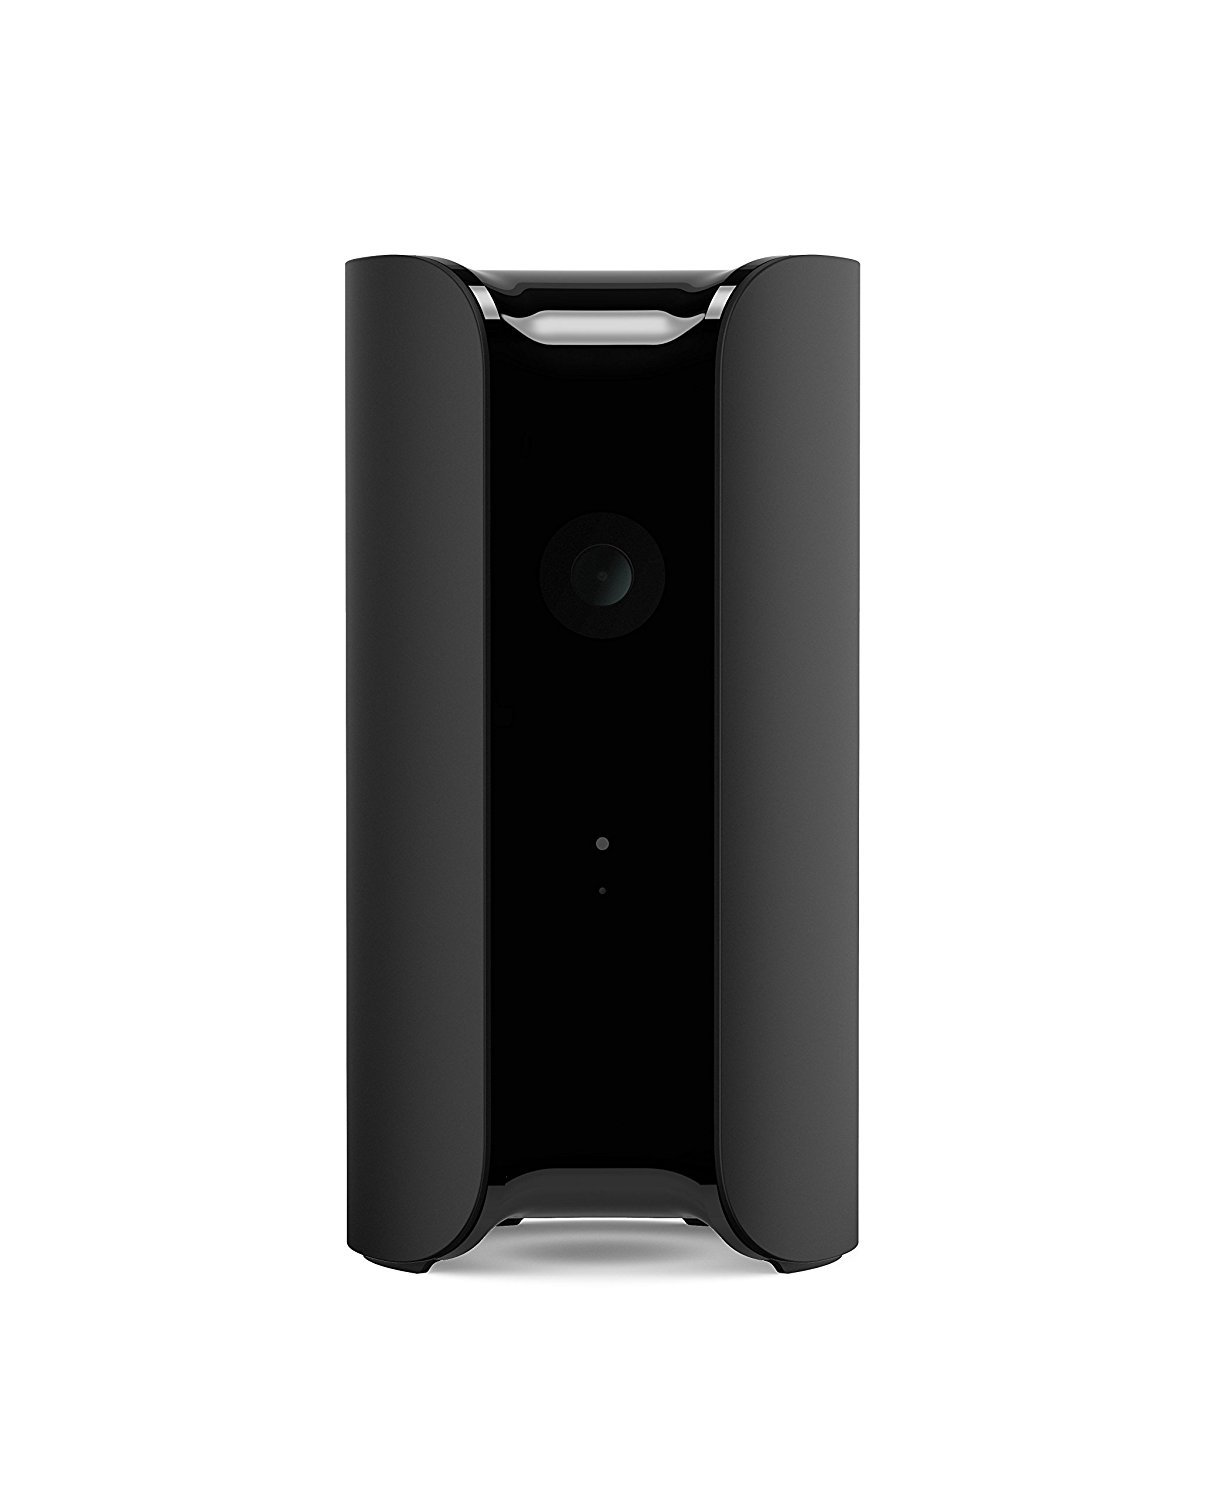 Canary All-in-One Home Security Device - Black by Canary